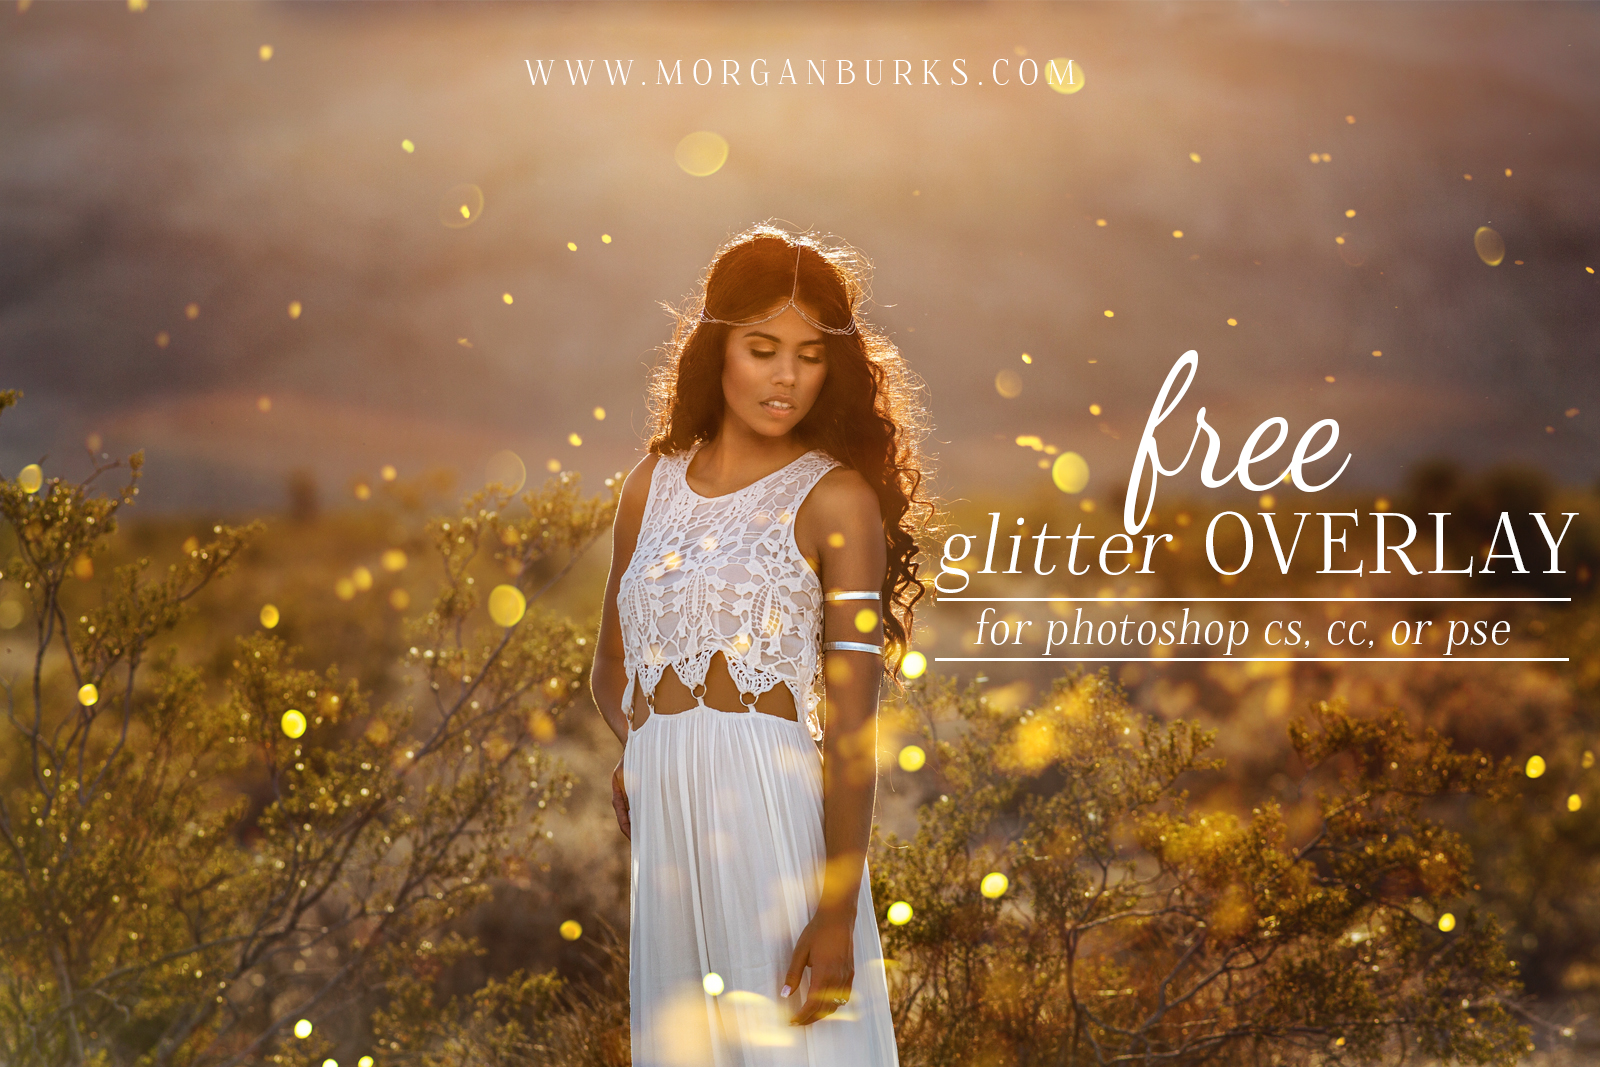 With this Free Glitter Overlay For Photoshop, you can add gorgeous golden glitter to your photos -- without the mess!